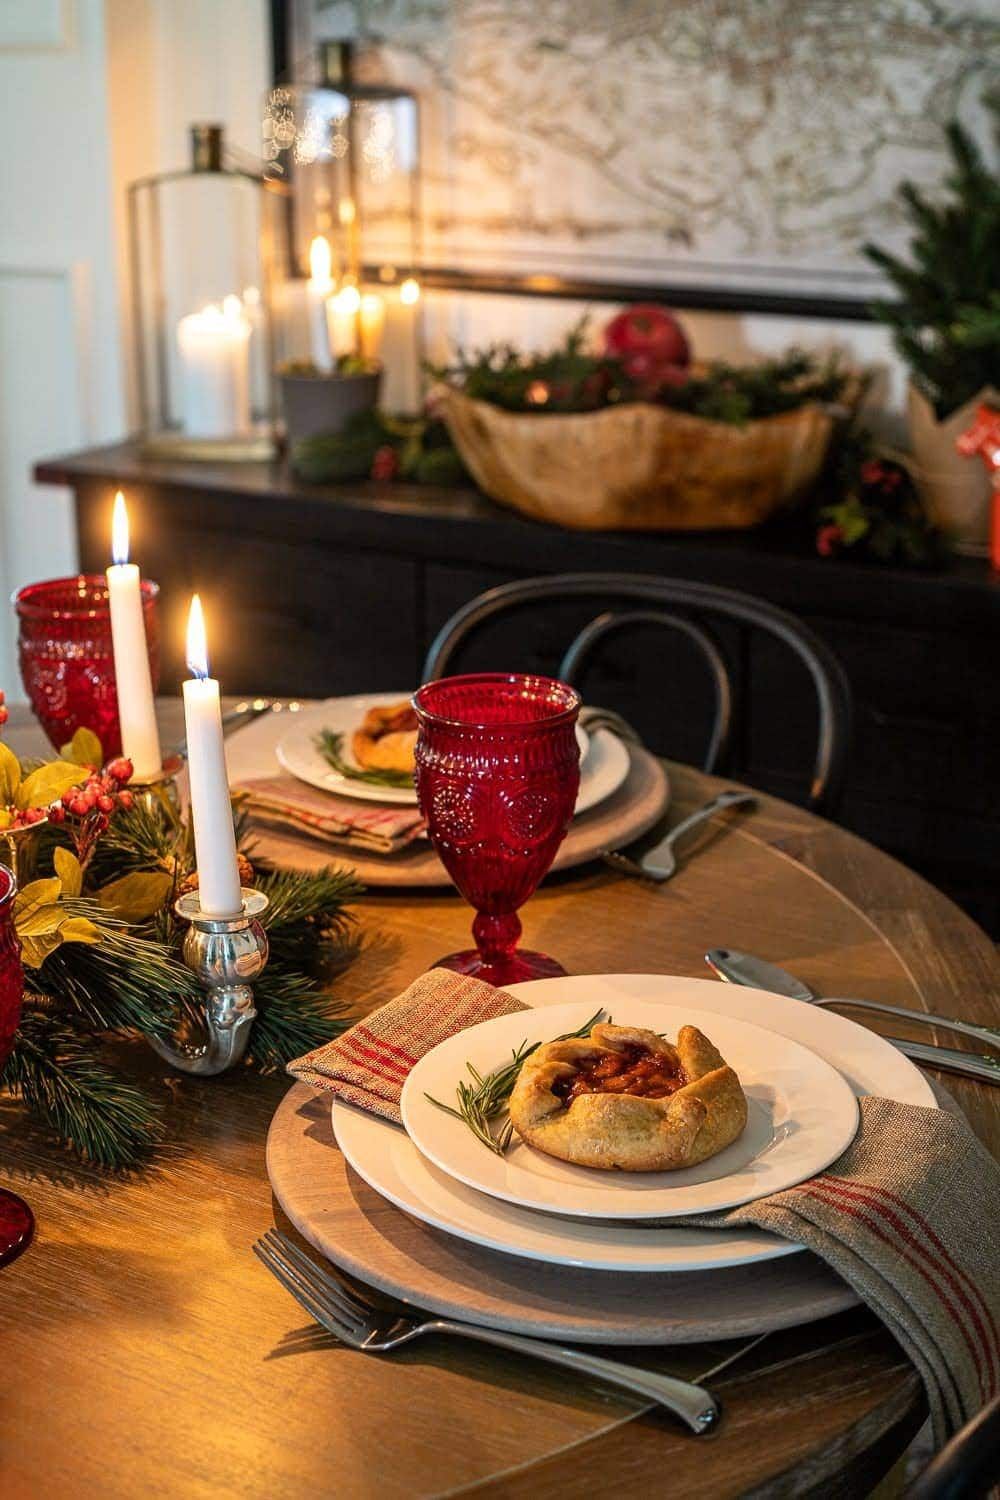 Christmas decor ideas | cozy holiday place setting